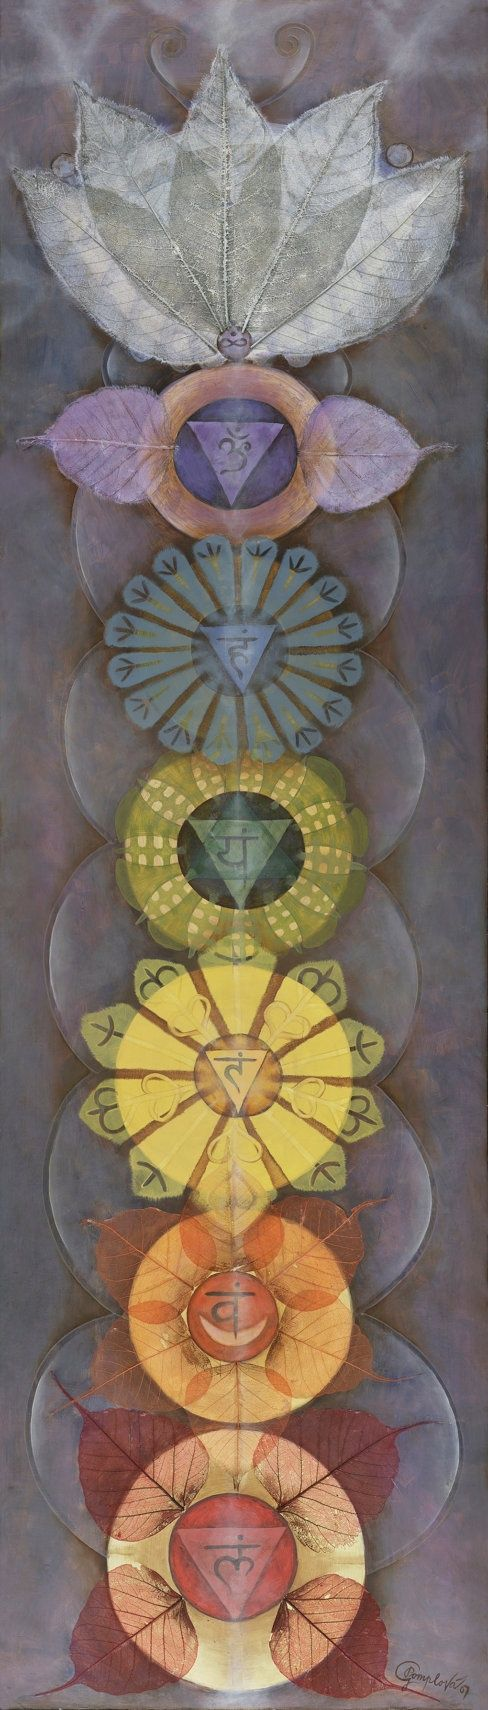 Beautiful Chakras by Gabriela Pomplova. This kind of vertical design is something to explore. Maybe some textile wall hangings.. #couleursnouvelles